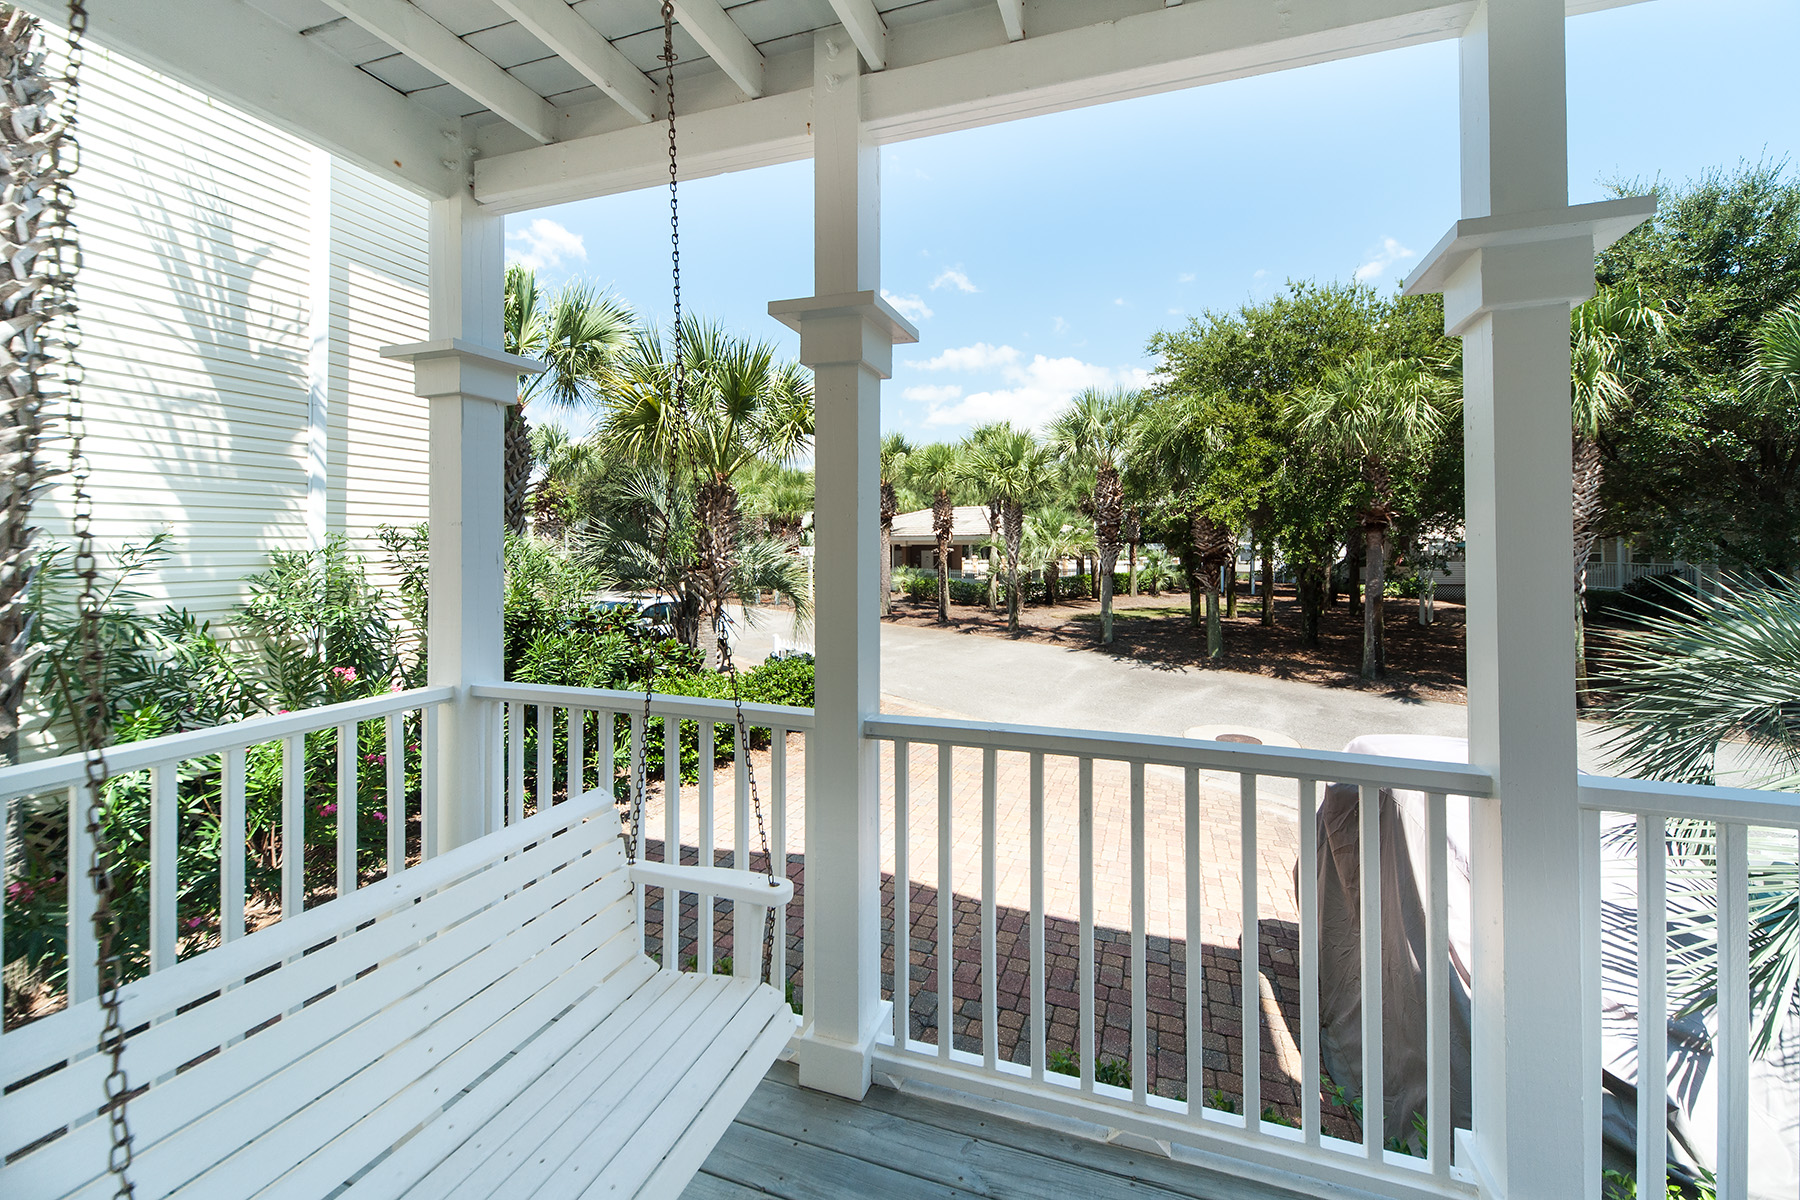 Single Family Home for Sale at FURNISHED CONDO WITH EASY BEACH ACCESS 132 Emerald Dunes Circle Santa Rosa Beach, Florida, 32459 United States